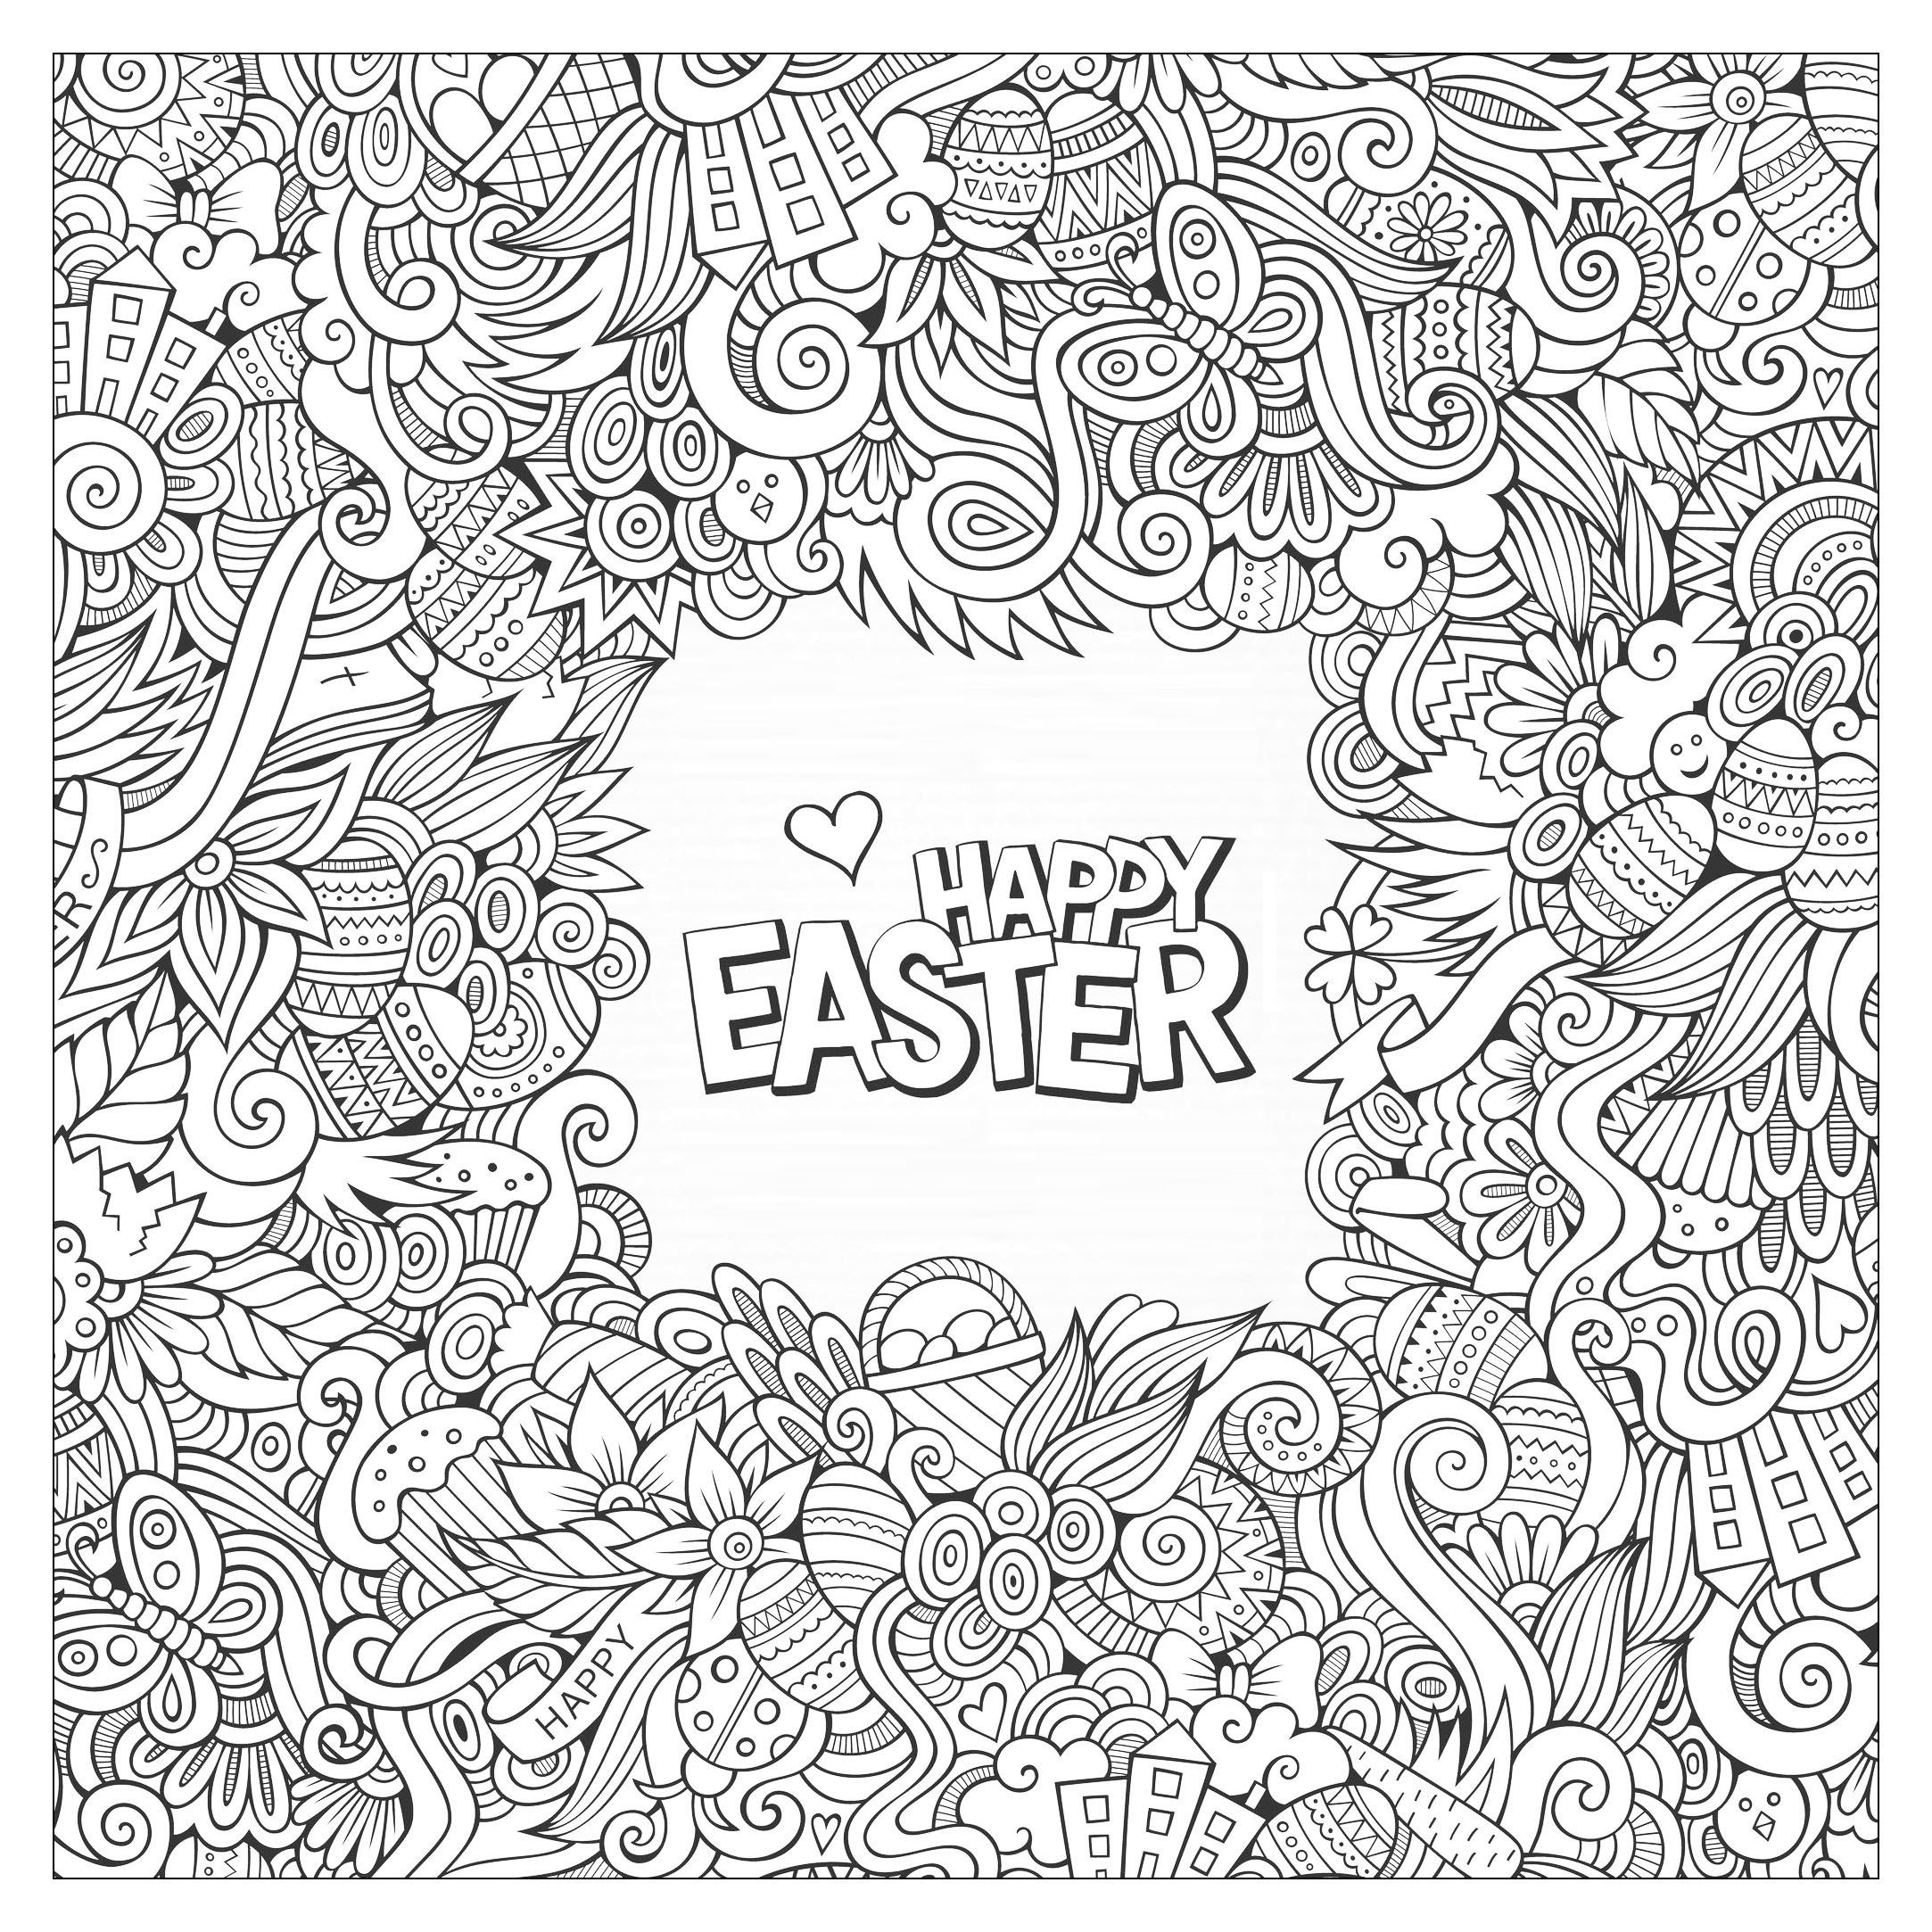 Easter greeting card to print and